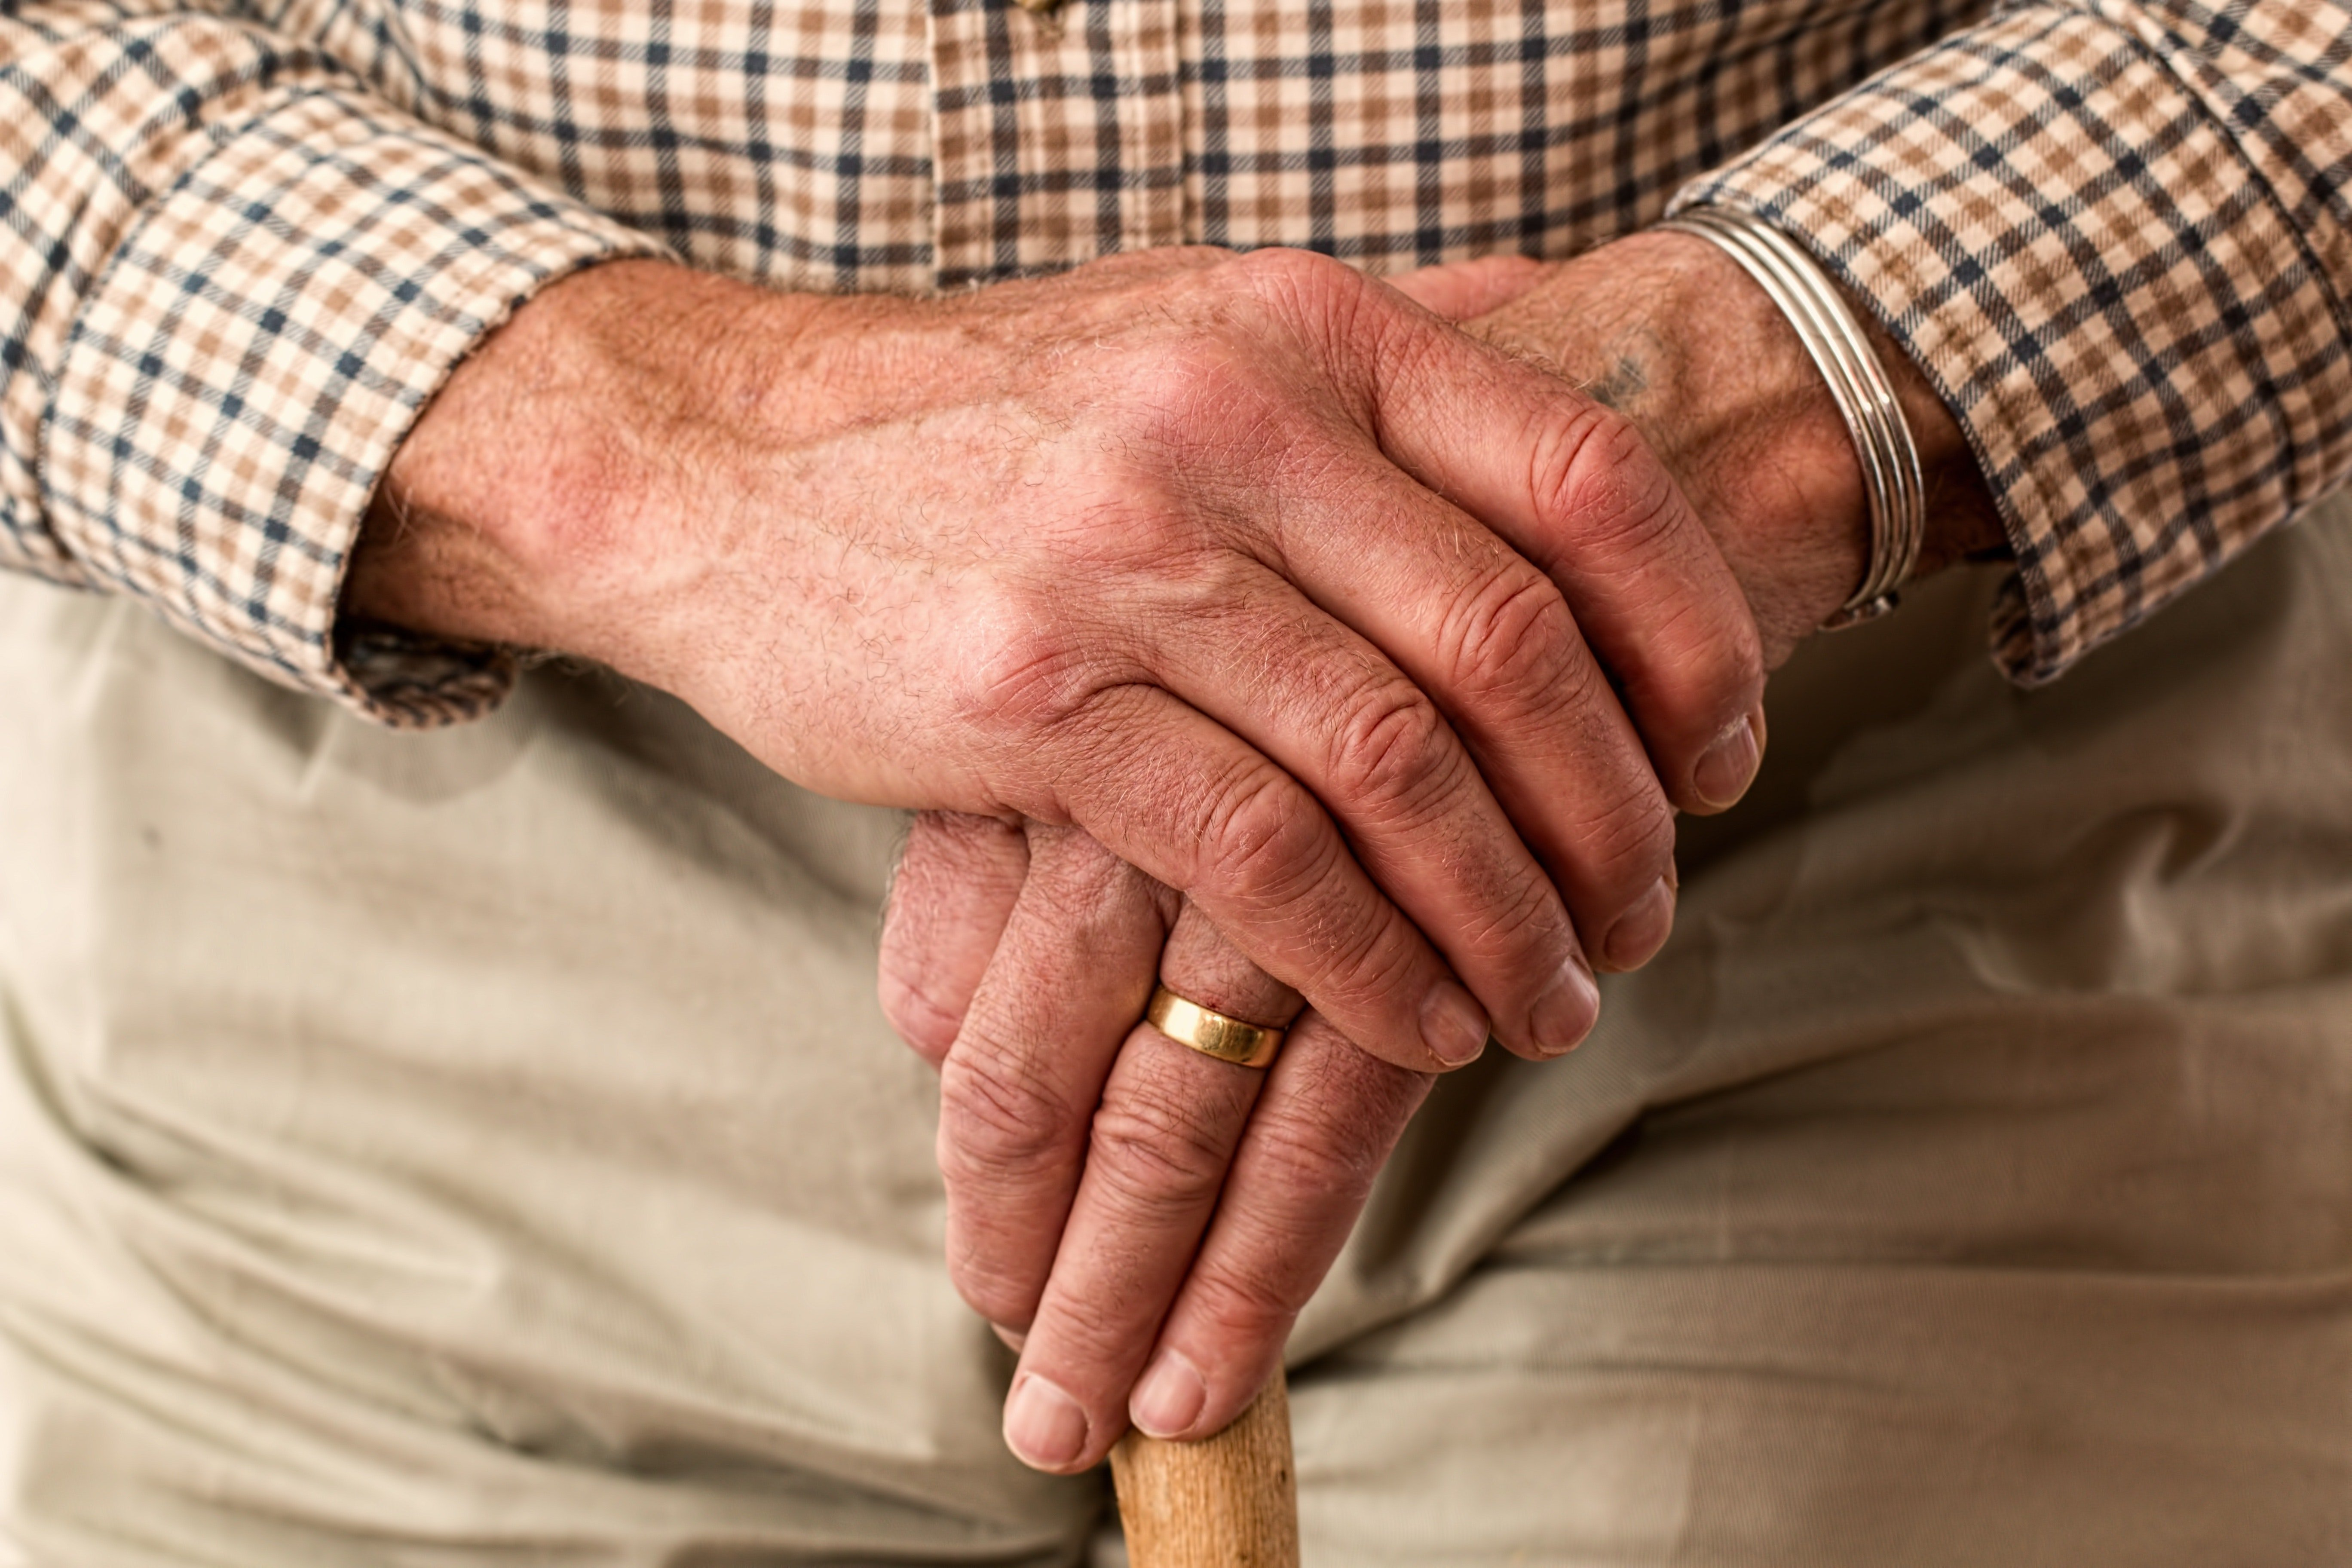 Pictured - A senior holding a rod | Source: Pexels